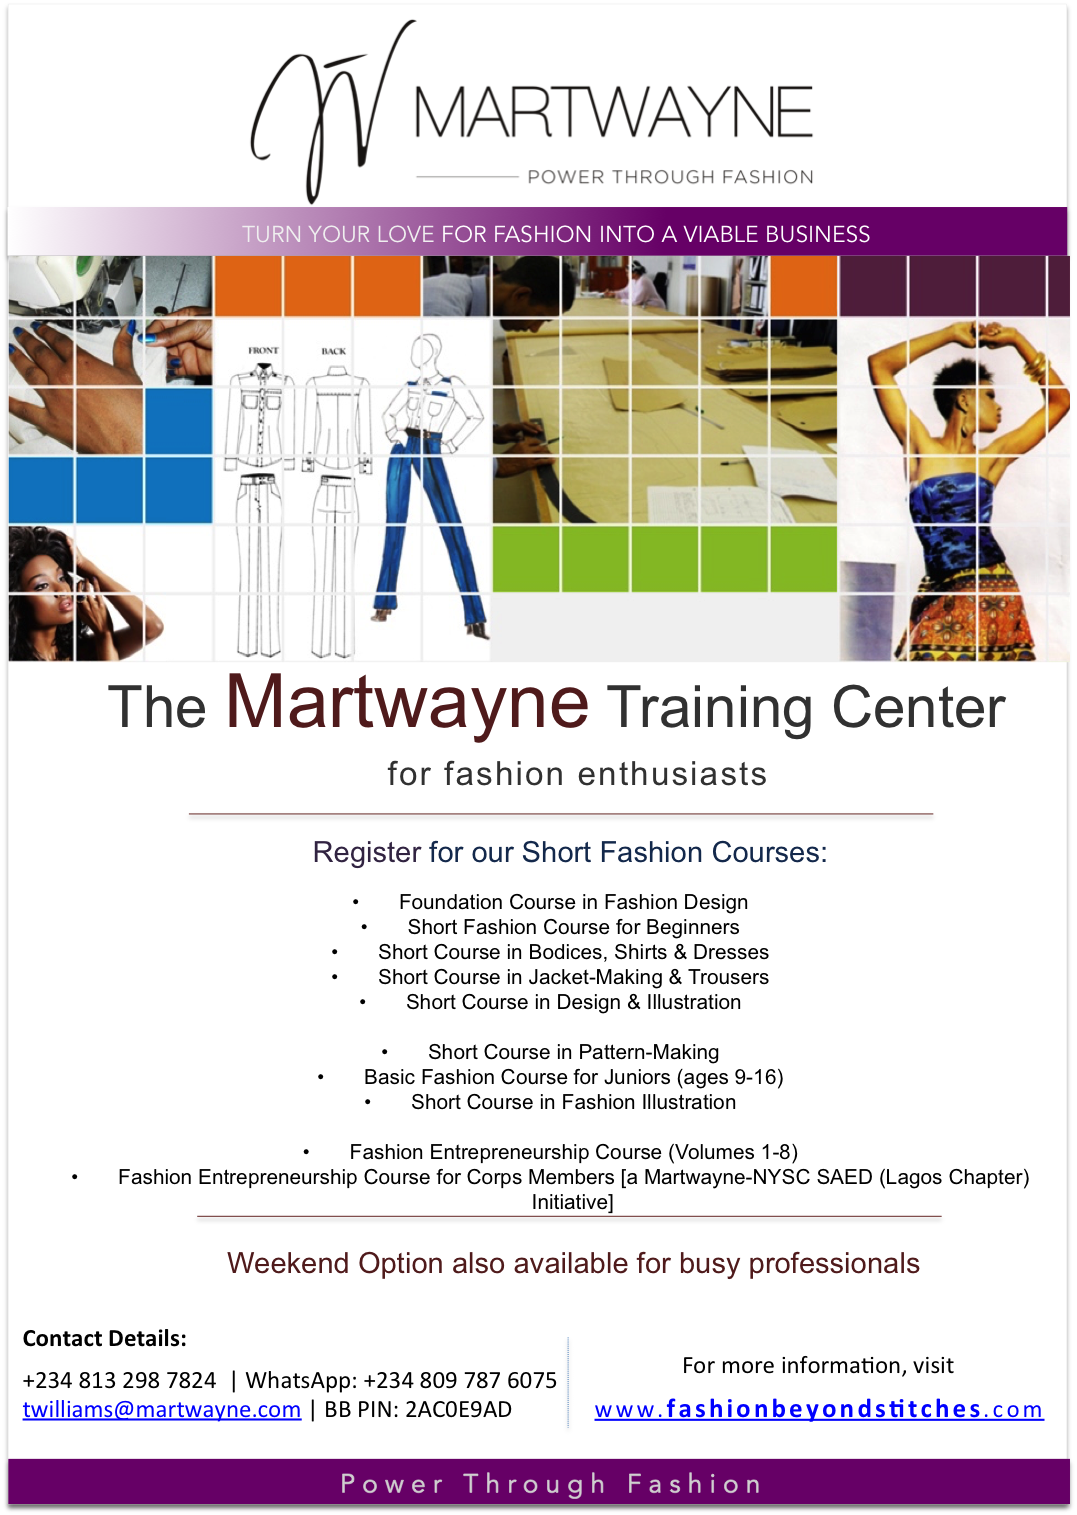 Fashion Courses at Martwayne. Click on image for more details.